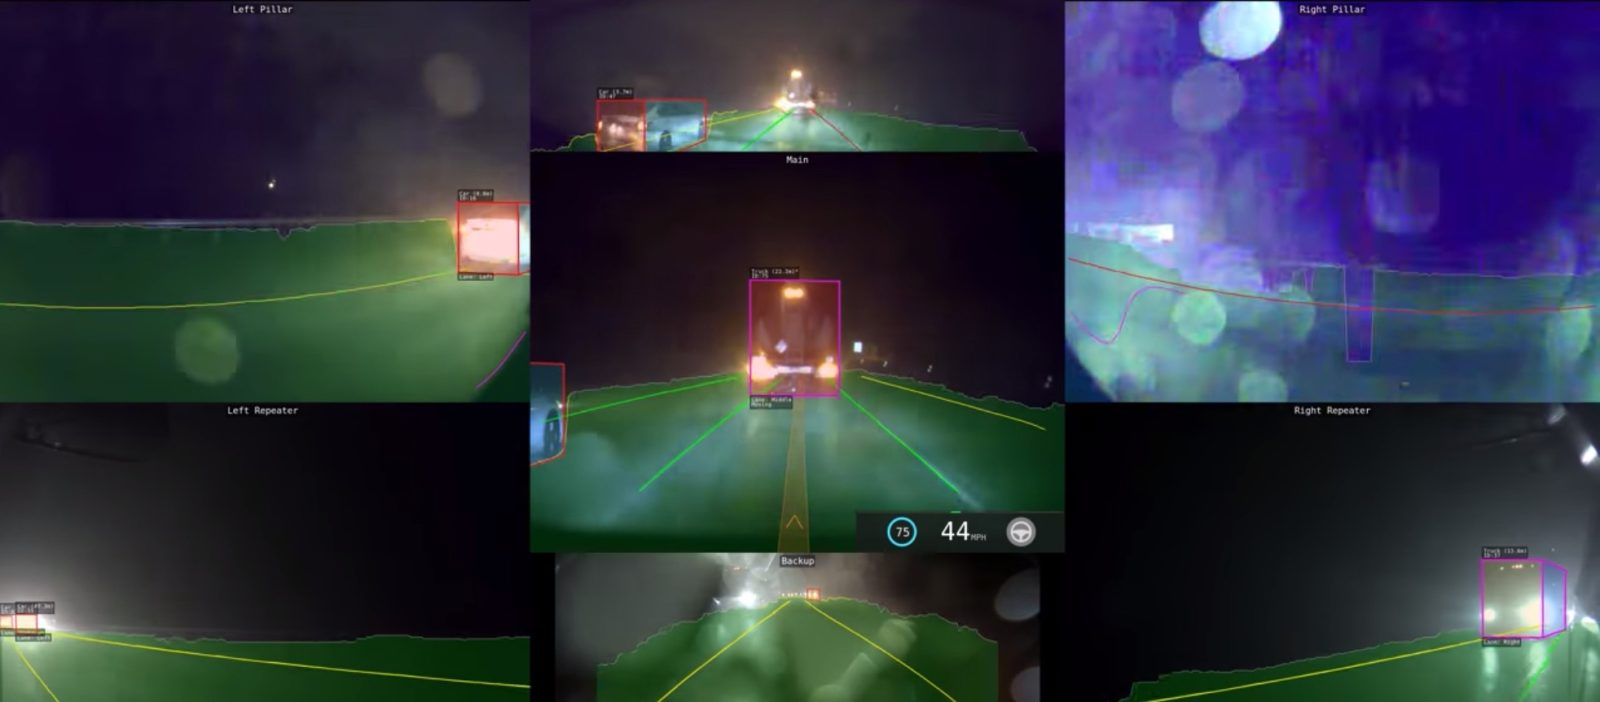 Cameras instead of LIDAR, what Tesla Autopilot can see in a